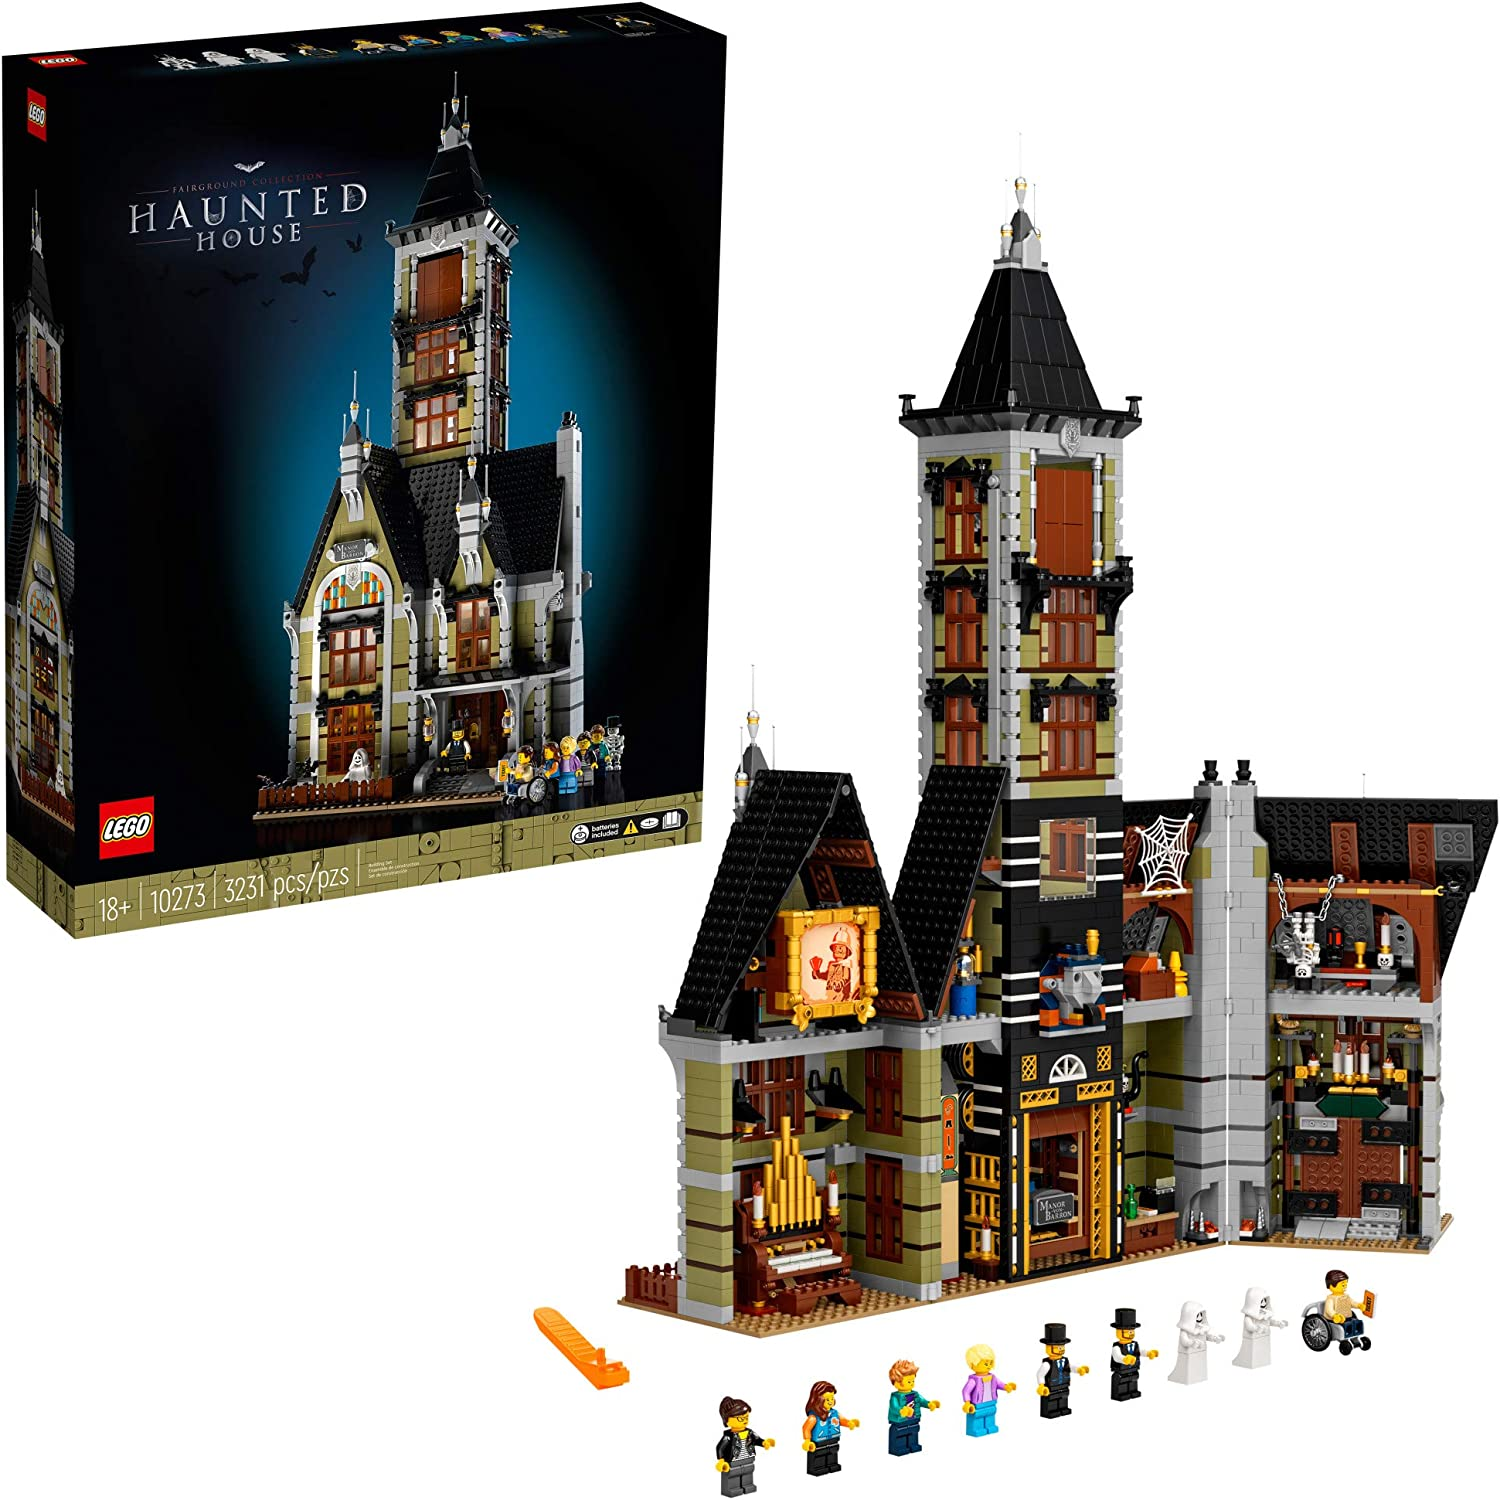 Amazon.com: LEGO Haunted House (10273) Building Kit; A Displayable Model Haunted House and a Creative DIY Project for Adults, New 2021 (3,231 Pieces): Toys & Games